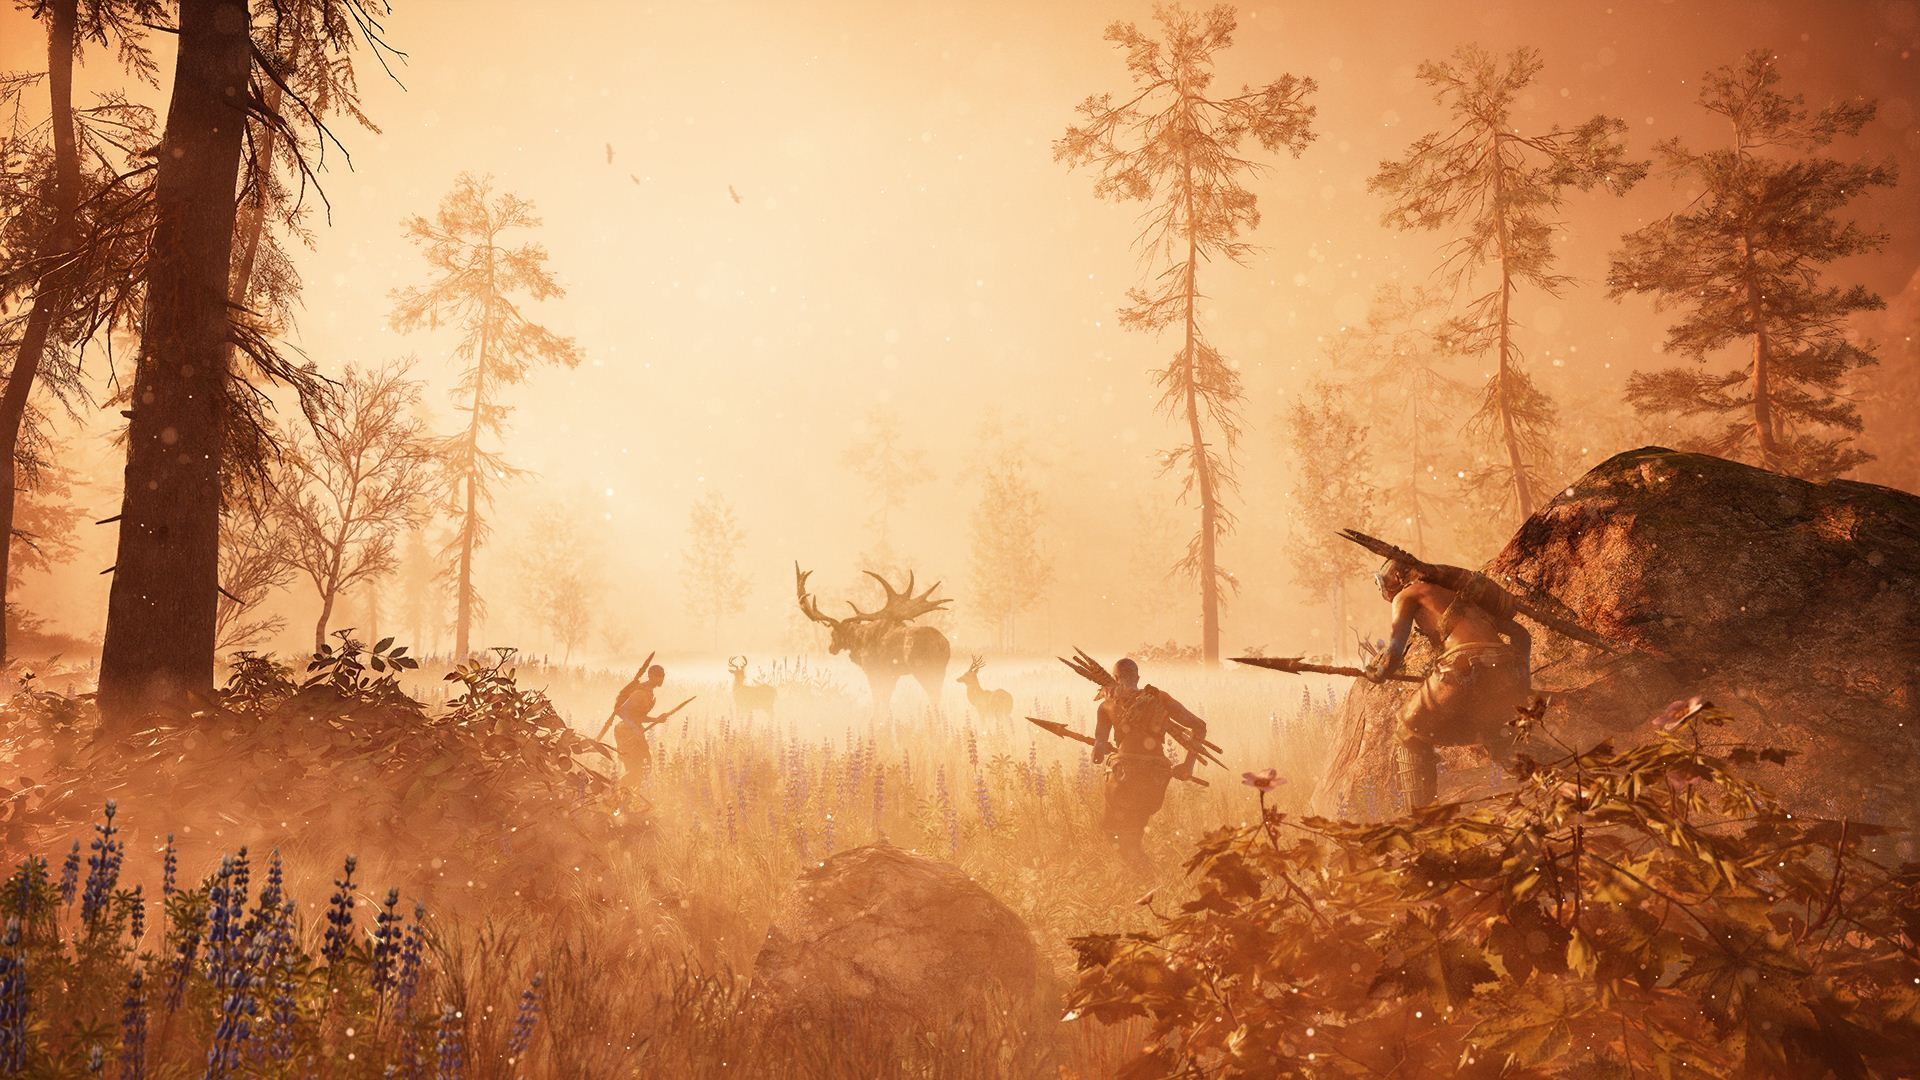 Far Cry Primal Review A Game 10 000 Years In The Making